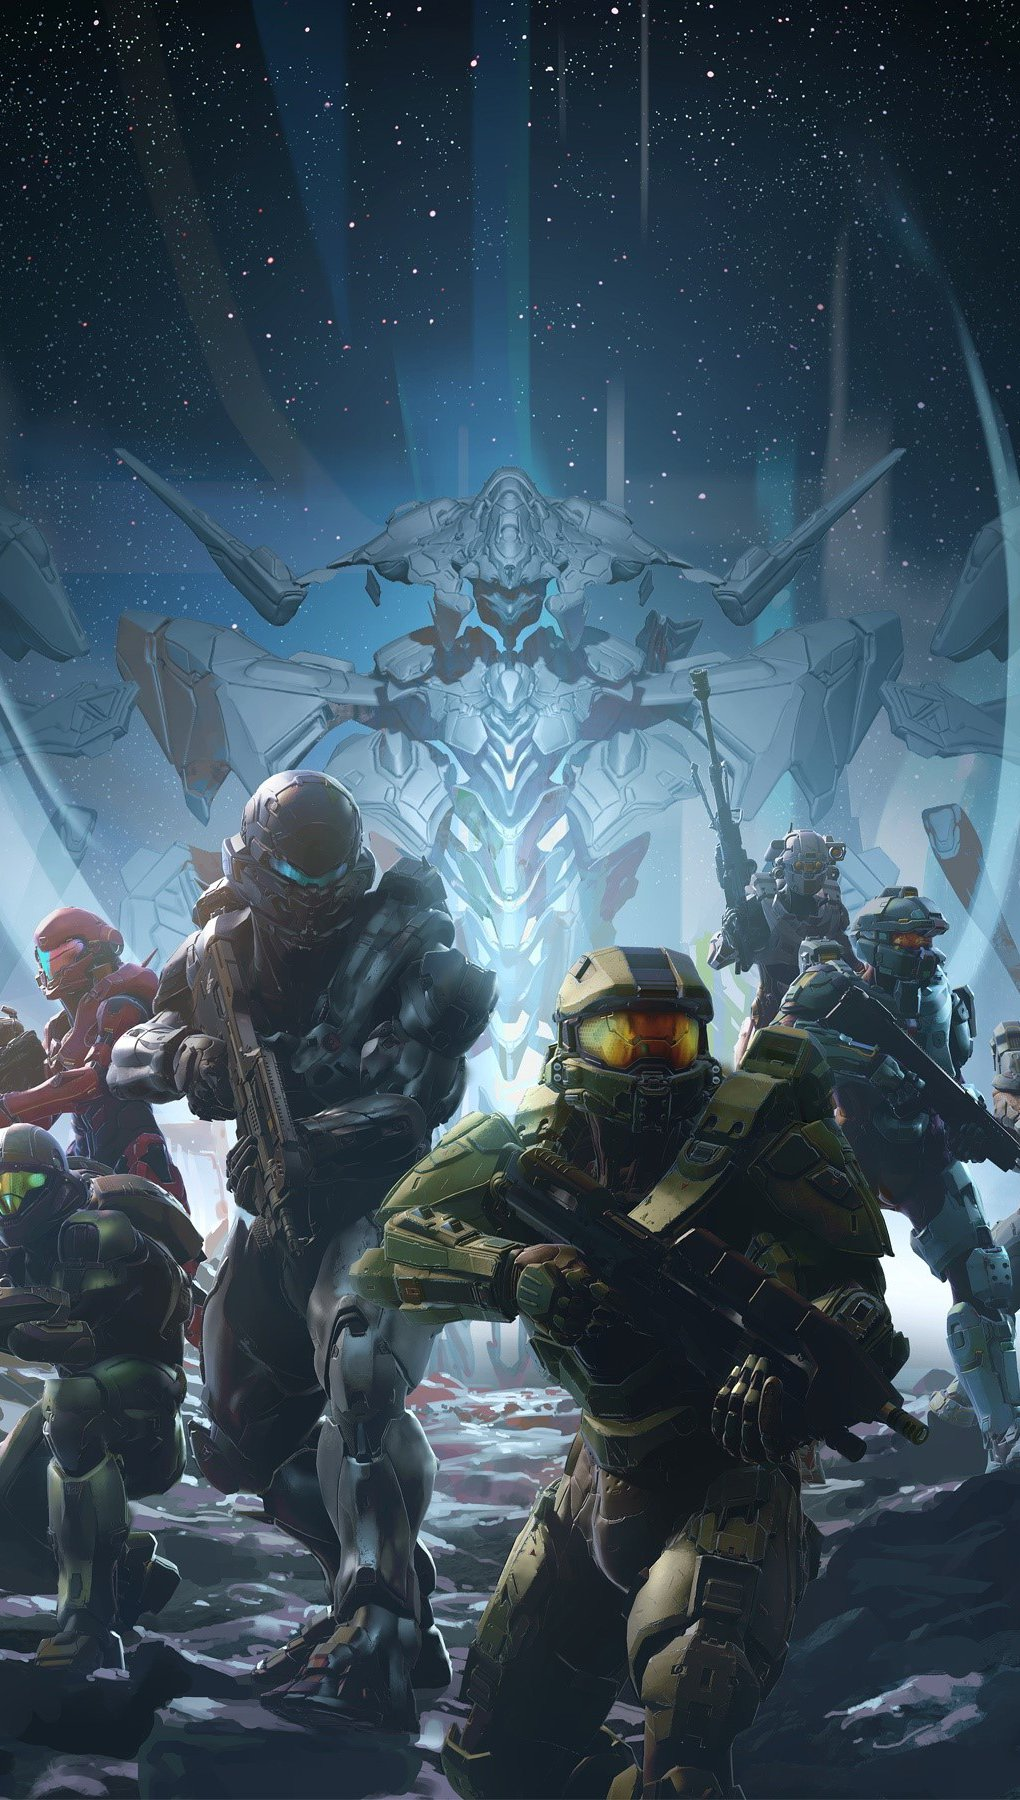 Wallpaper Characters of Halo 5 Guardians Vertical